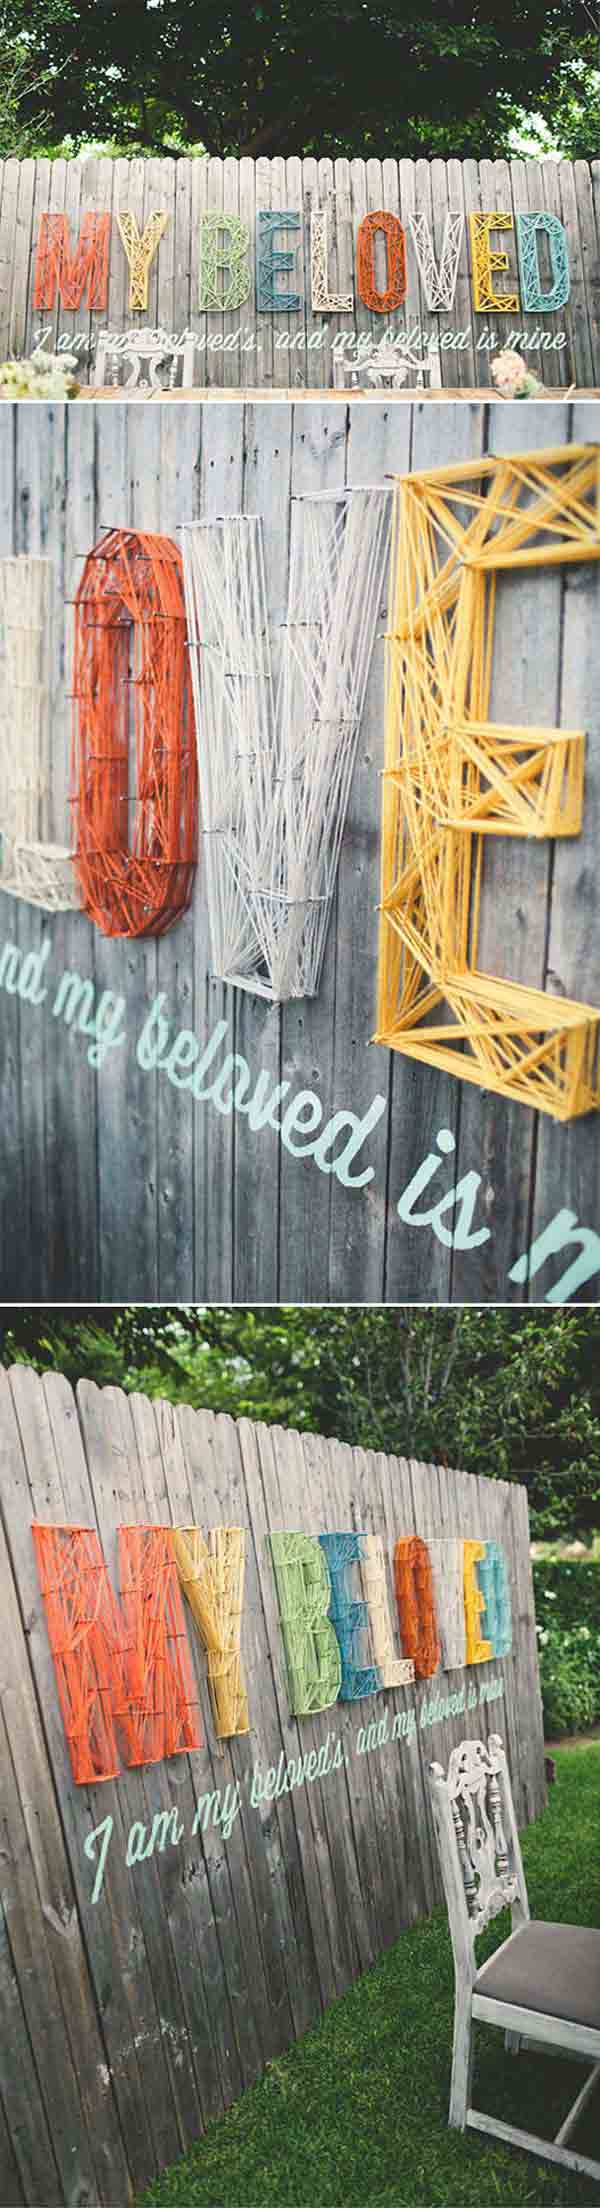 Top 23 Surprising DIY Ideas To Decorate Your Garden Fence ... on Backyard Wall Decor Ideas  id=41031